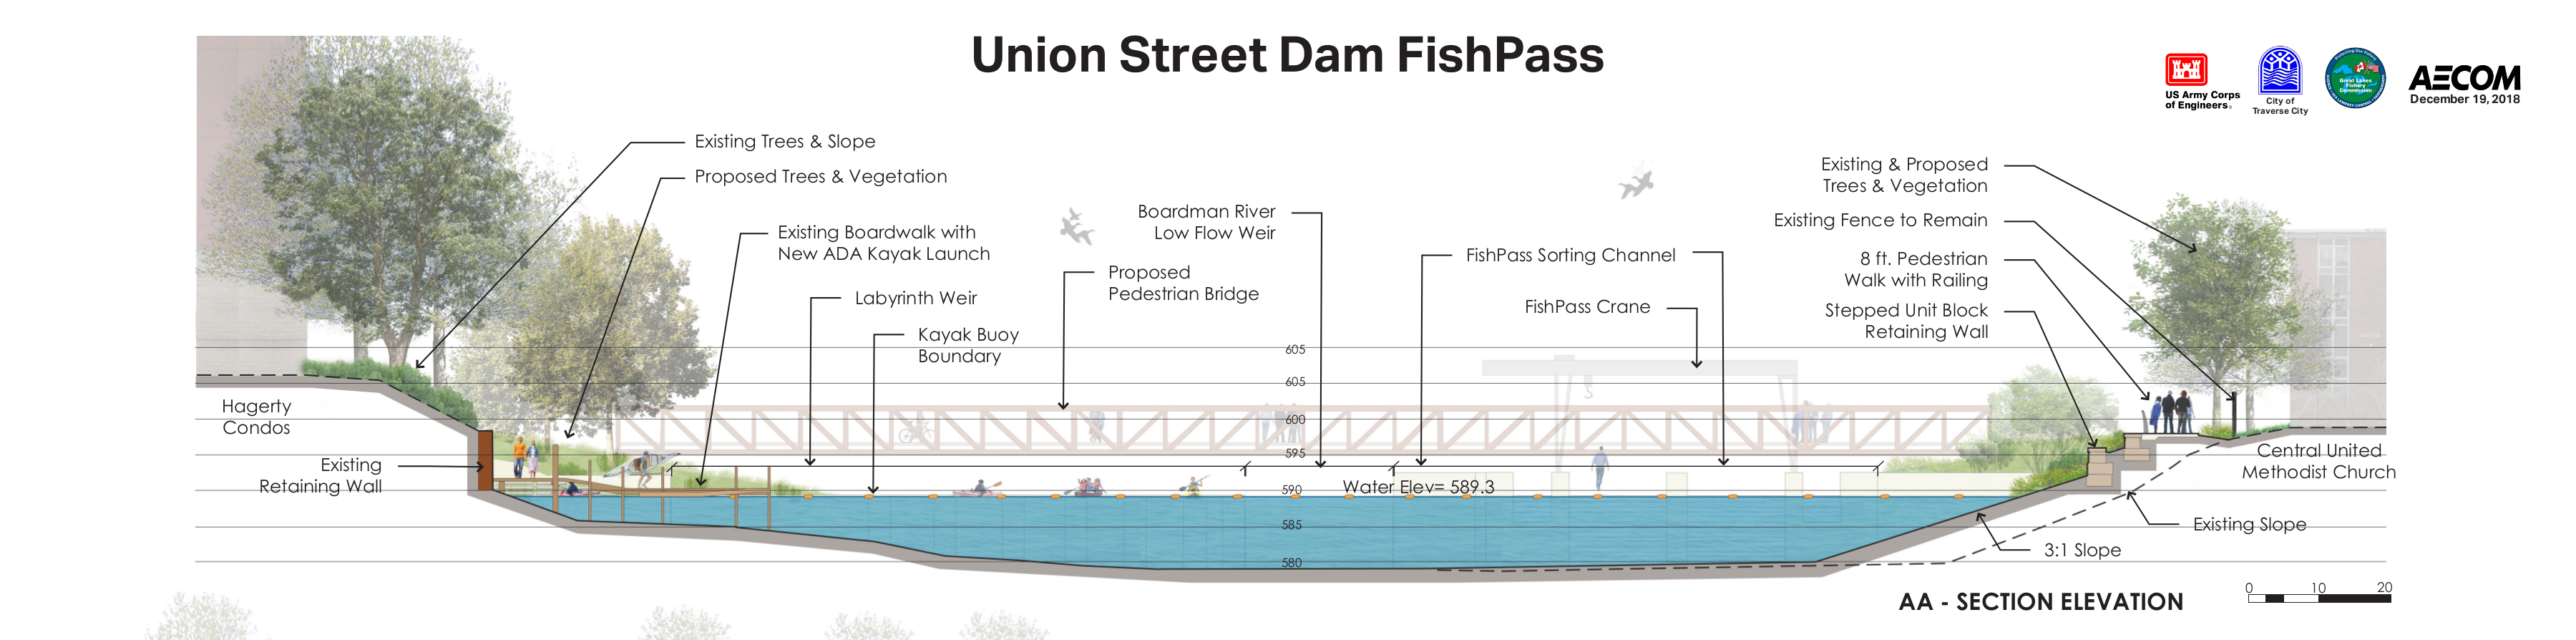 An up river facing rendering of the Boardman River after the FishPass project